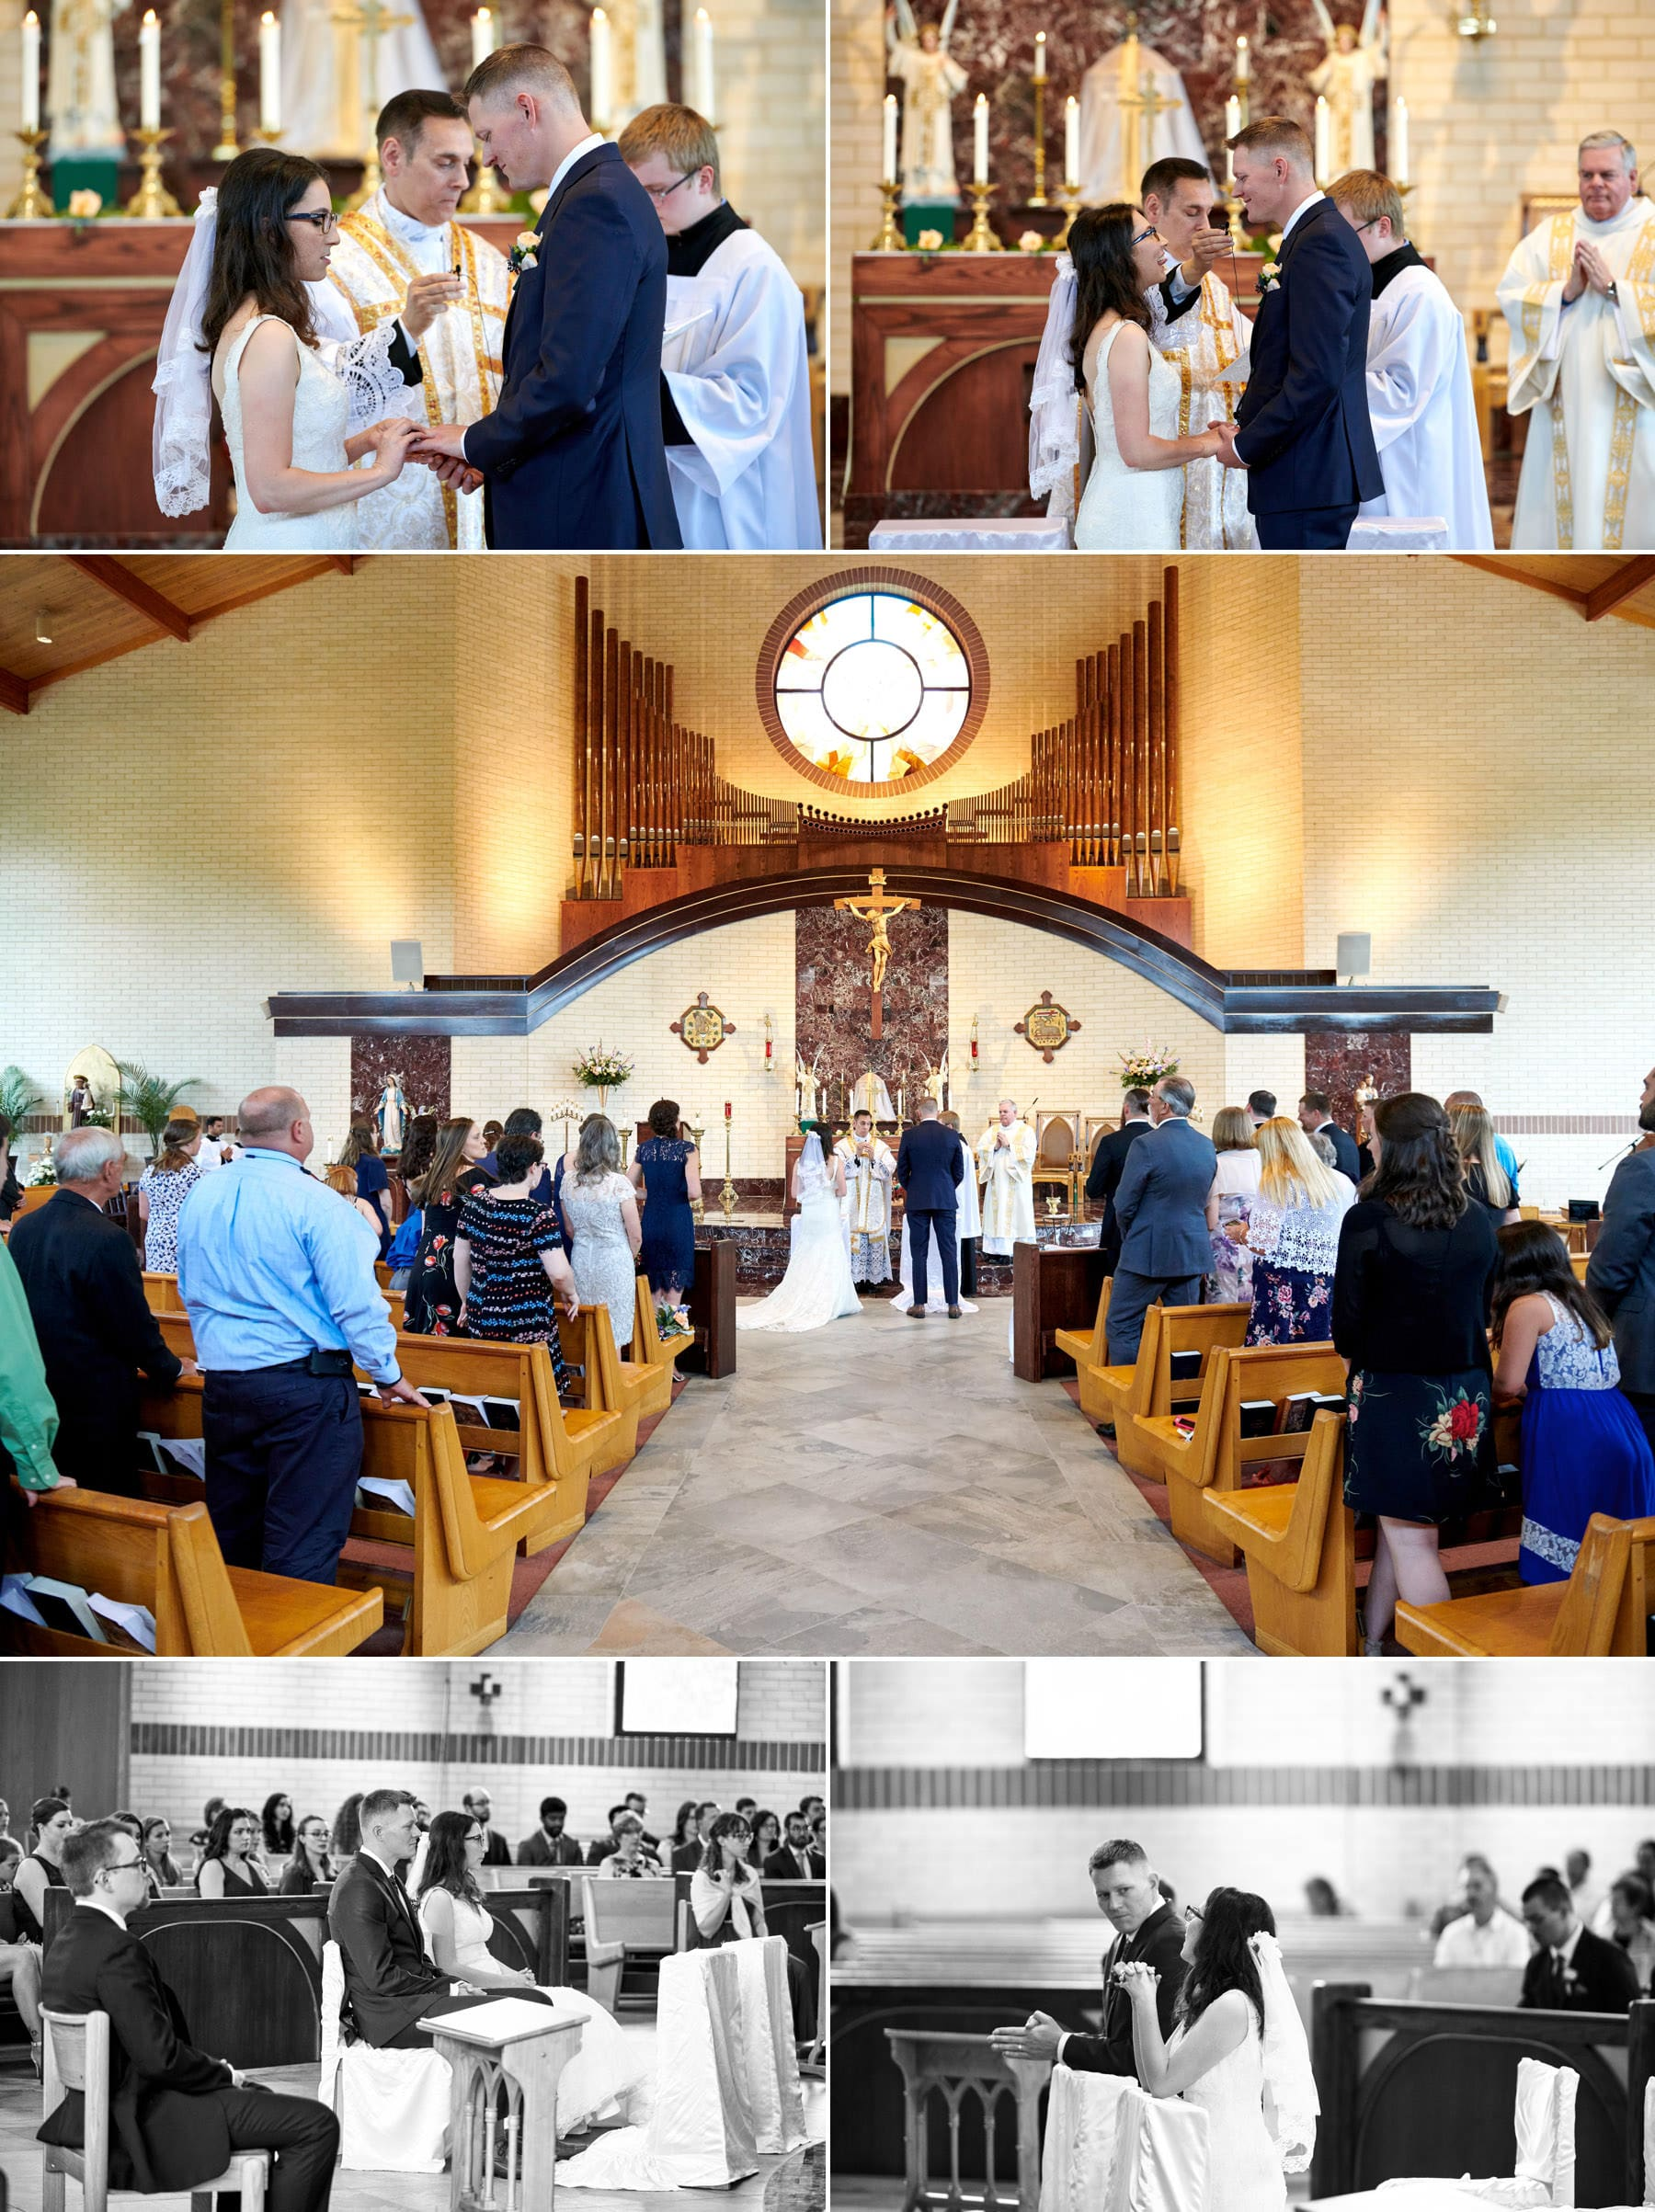 st magdalen flemington nj wedding photos